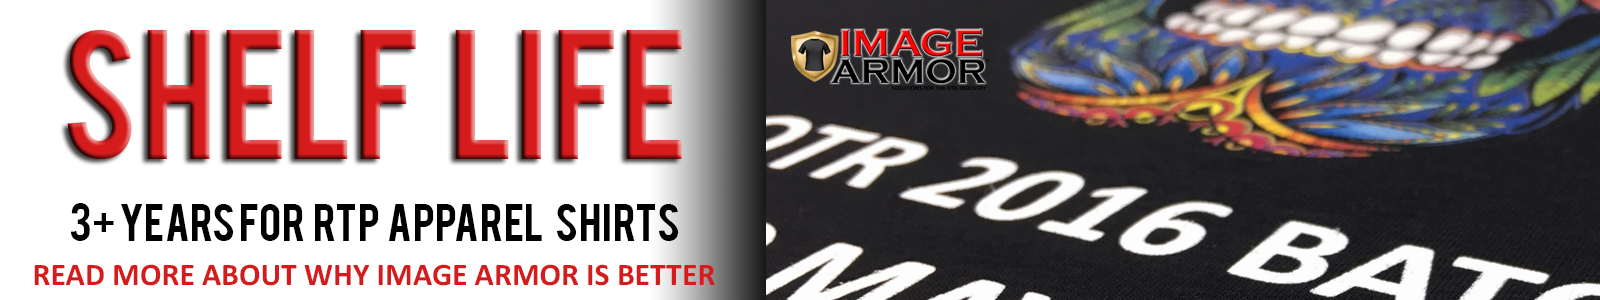 Image Armor RTP Apparel 3 Year Shelf Life